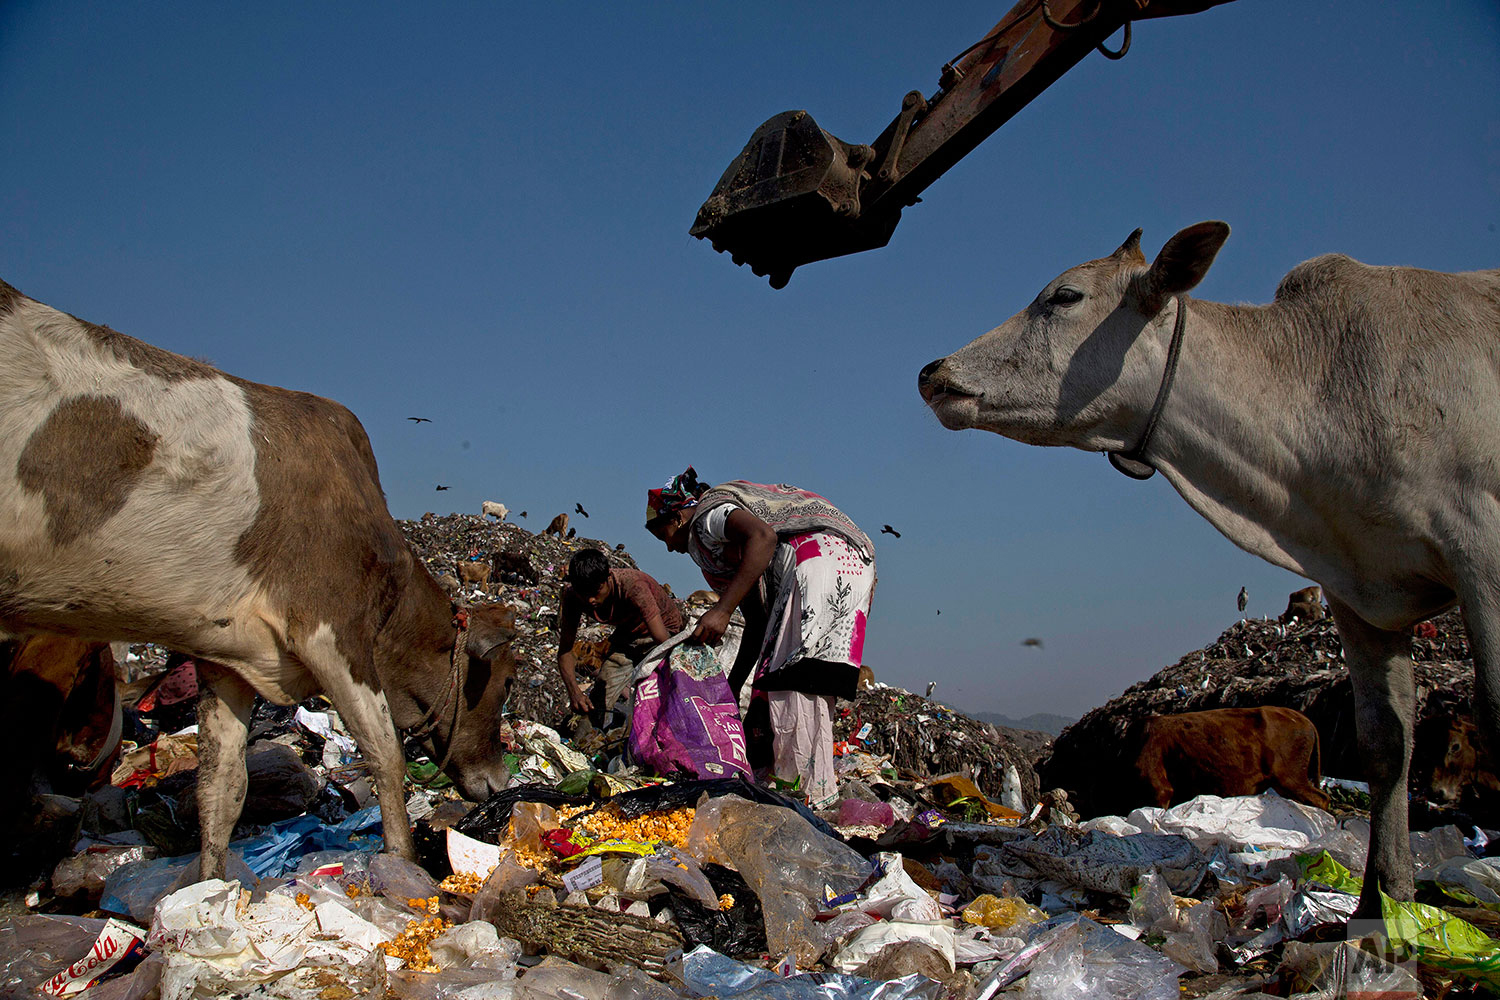 In this Monday, Dec. 10, 2018 photo, Indian ragpickers search recyclable materials at a garbage dumping site on the outskirts of Gauhati, India. (AP Photo/Anupam Nath)